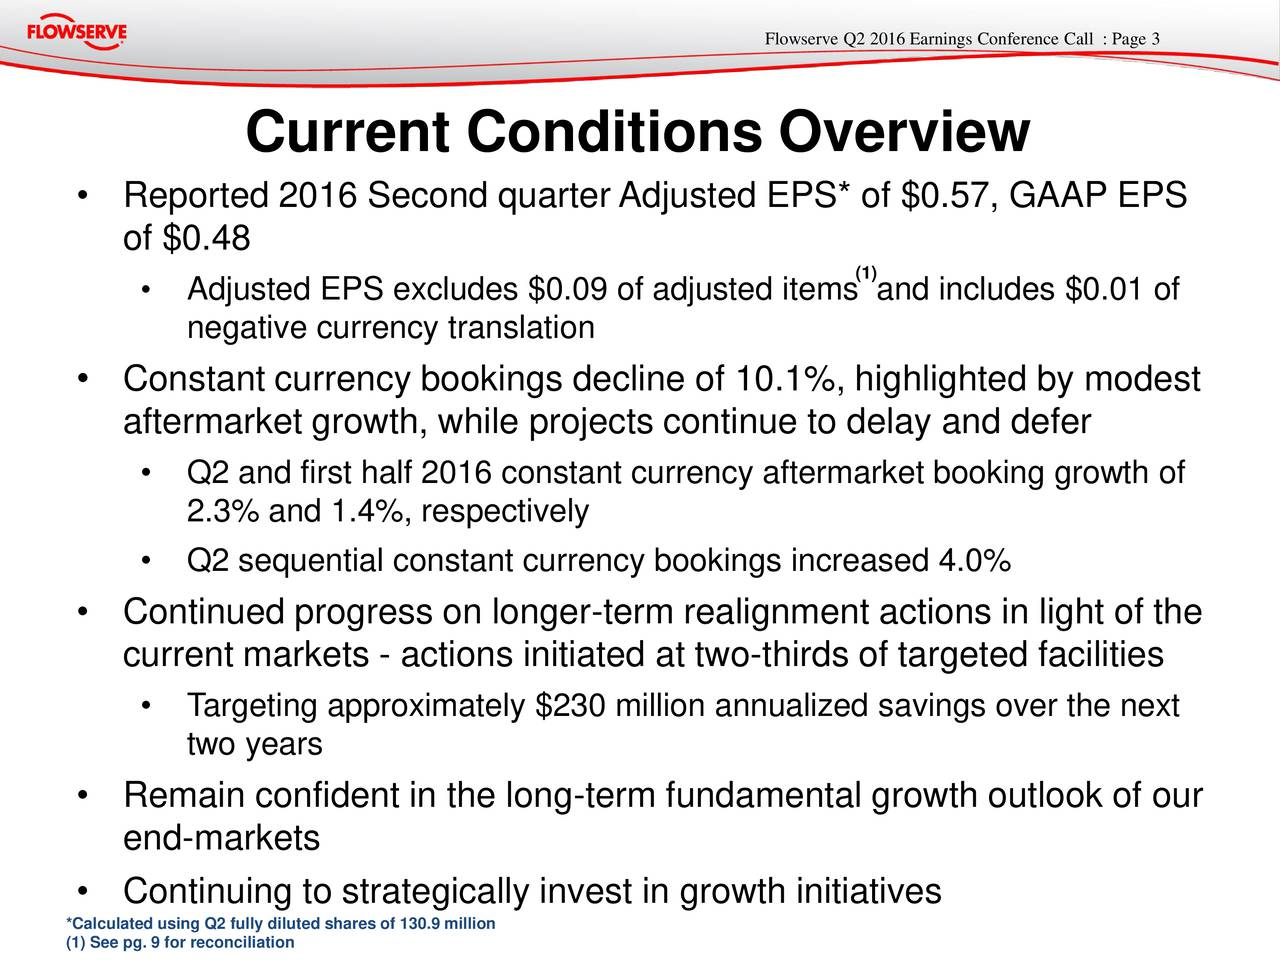 Current Conditions Overview Reported 2016 Second quarter Adjusted EPS* of $0.57, GAAP EPS of $0.48 Adjusted EPS excludes $0.09 of adjusted items and includes $0.01 of negative currency translation Constant currency bookings decline of 10.1%, highlighted by modest aftermarket growth, while projects continue to delay and defer Q2 and first half 2016 constant currency aftermarket booking growth of 2.3% and 1.4%, respectively Q2 sequential constant currency bookings increased 4.0% Continued progress on longer-term realignment actions in light of the current markets - actions initiated at two-thirds of targeted facilities Targeting approximately $230 million annualized savings over the next two years Remain confident in the long-term fundamental growth outlook of our end-markets Continuing to strategically invest in growth initiatives *Calculated using Q2 fully diluted shares of 130.9 million